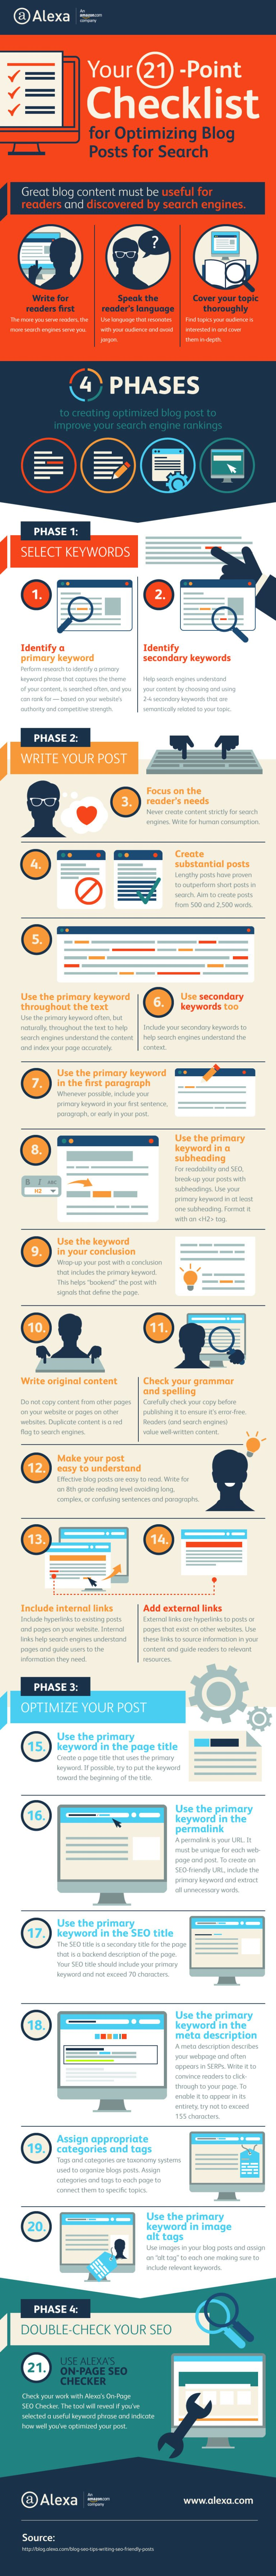 Blog SEO: 21 Step Checklist to Optimise Your Posts for Google [Infographic]   Social Media Today